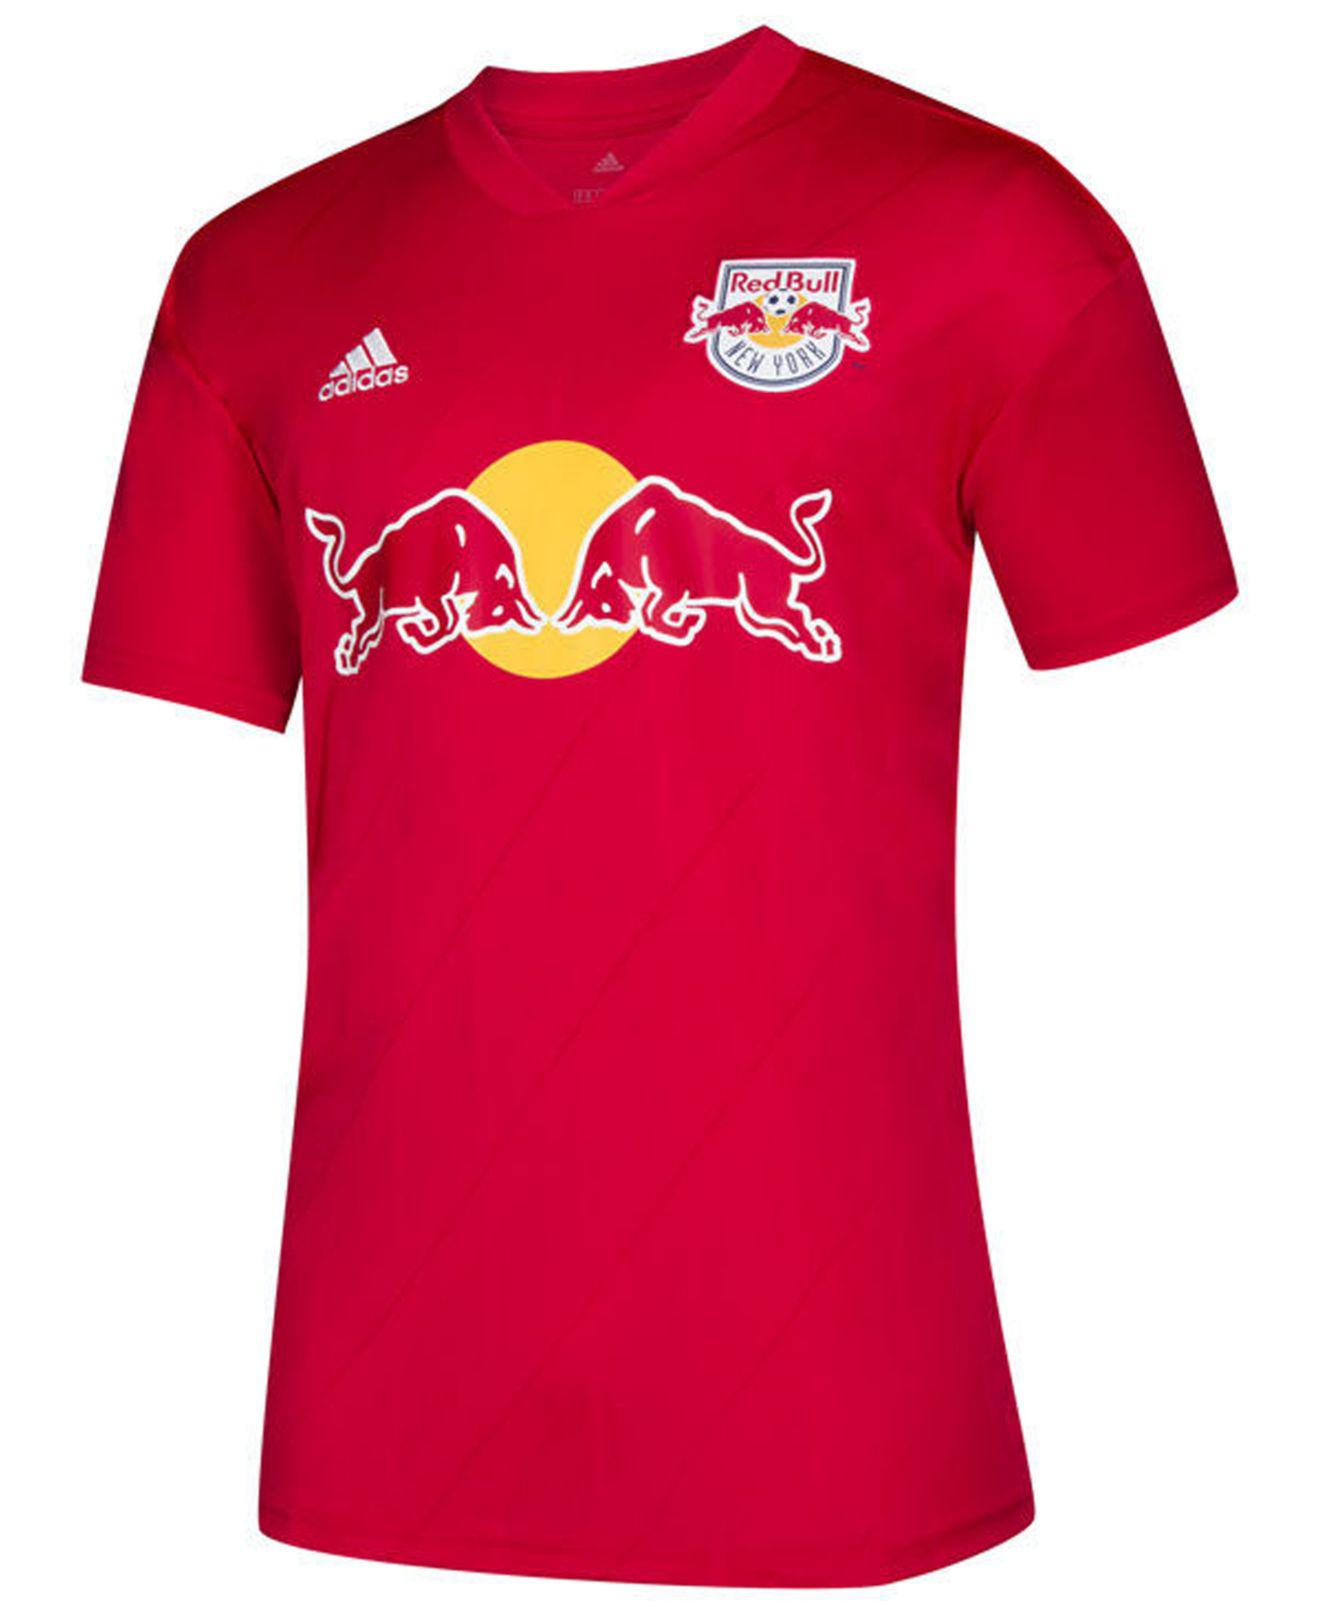 7e8649e4796 Adidas - New York Red Bulls Secondary Replica Jersey for Men - Lyst. View  fullscreen